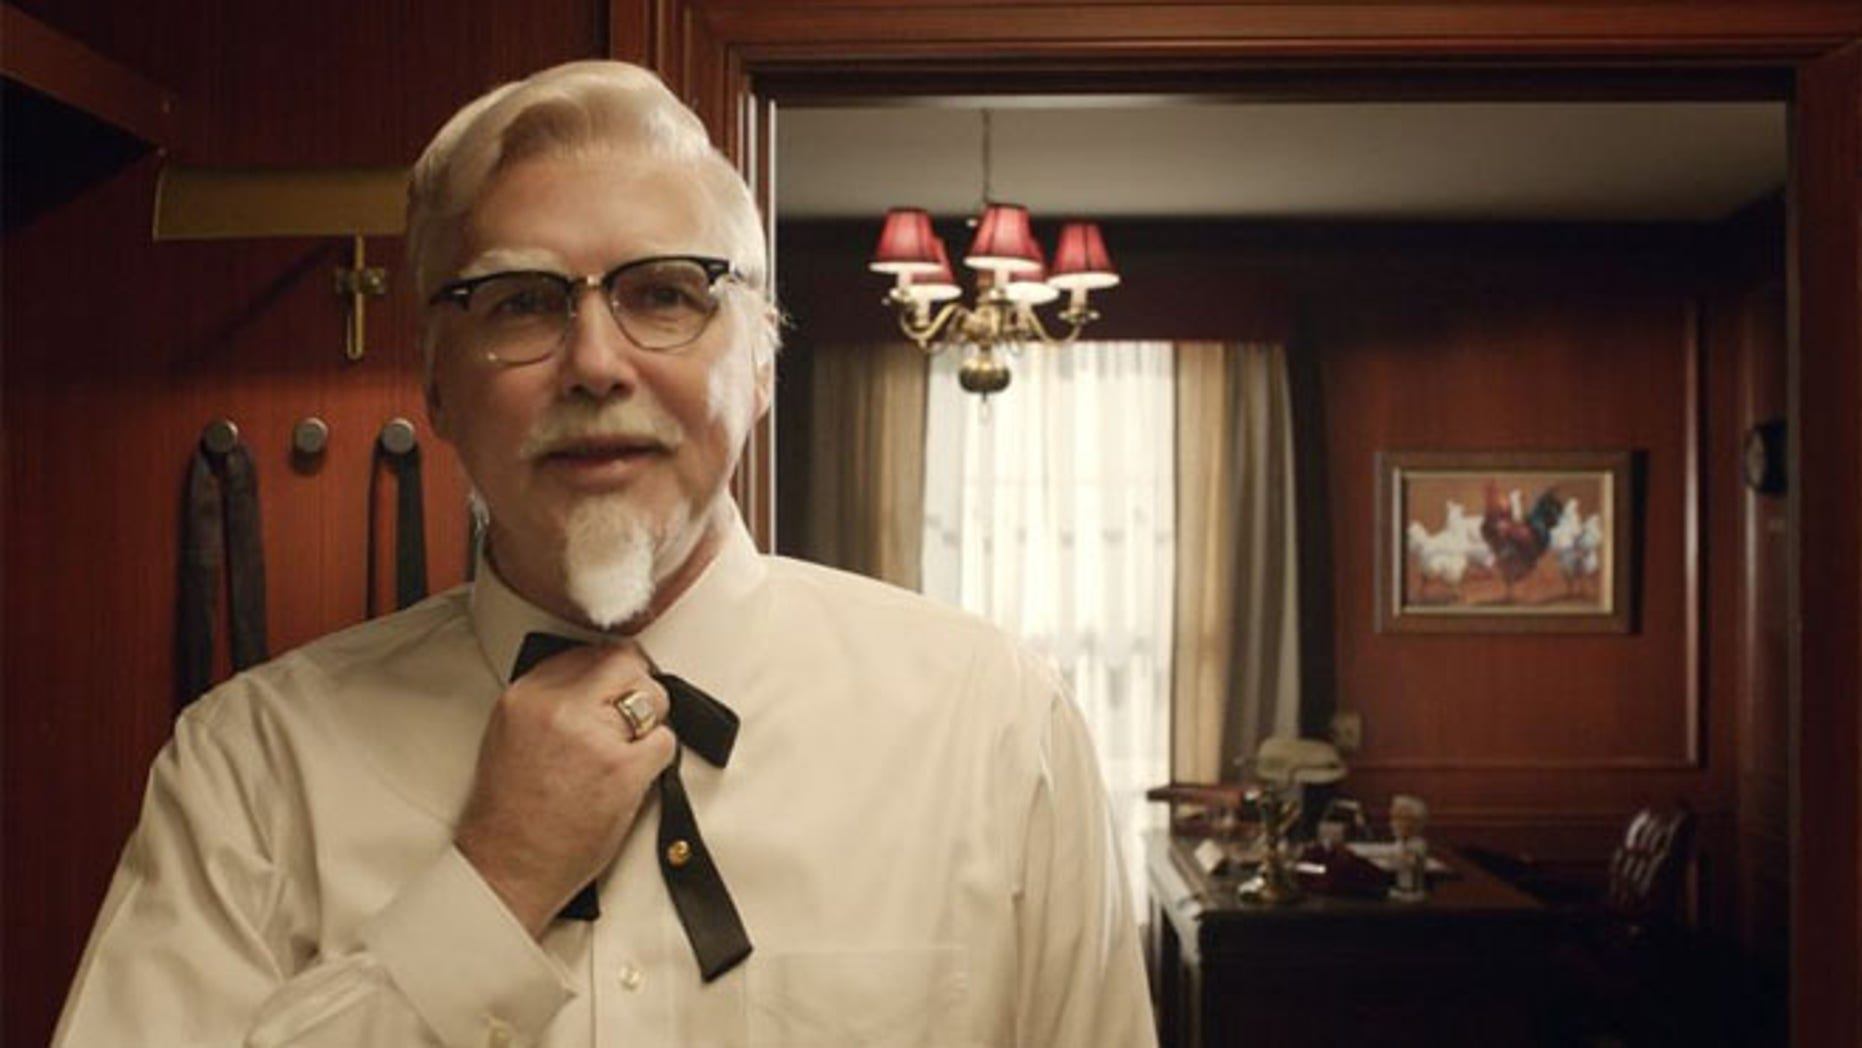 KFC CEO Greg Creed recently said he was thrilled that one in five people hated the Hammond-led ads.